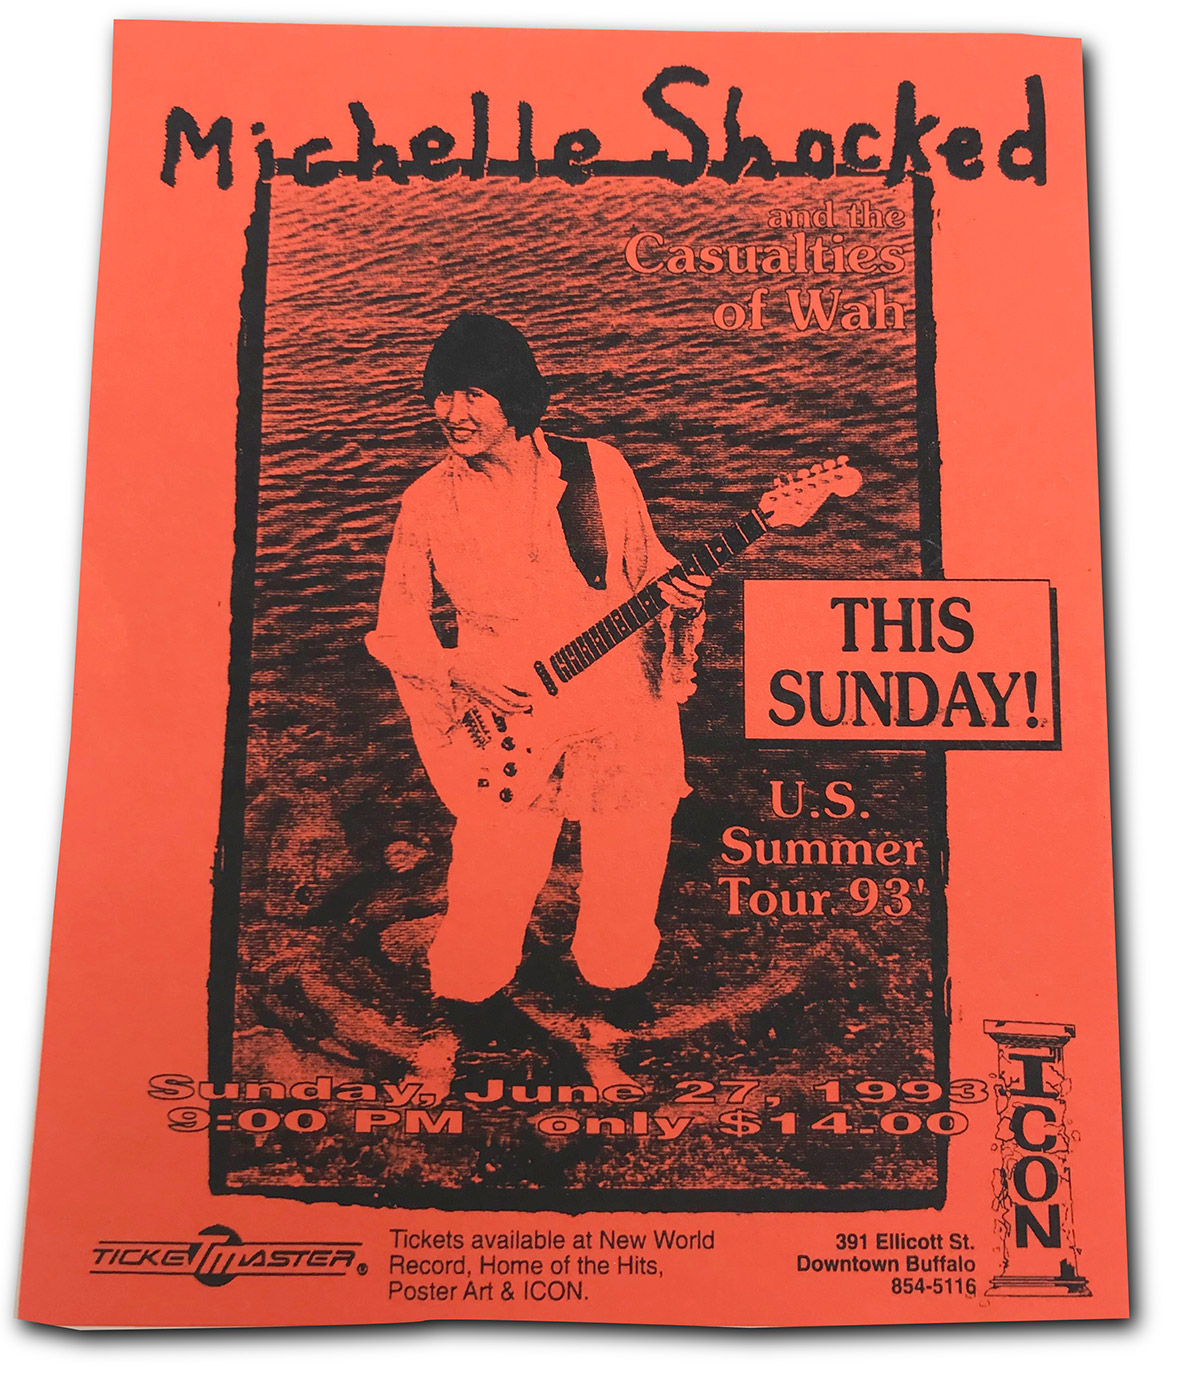 Michelle Shocked, rock poster, ICON, buffalo, NY, mark wisz, 1993